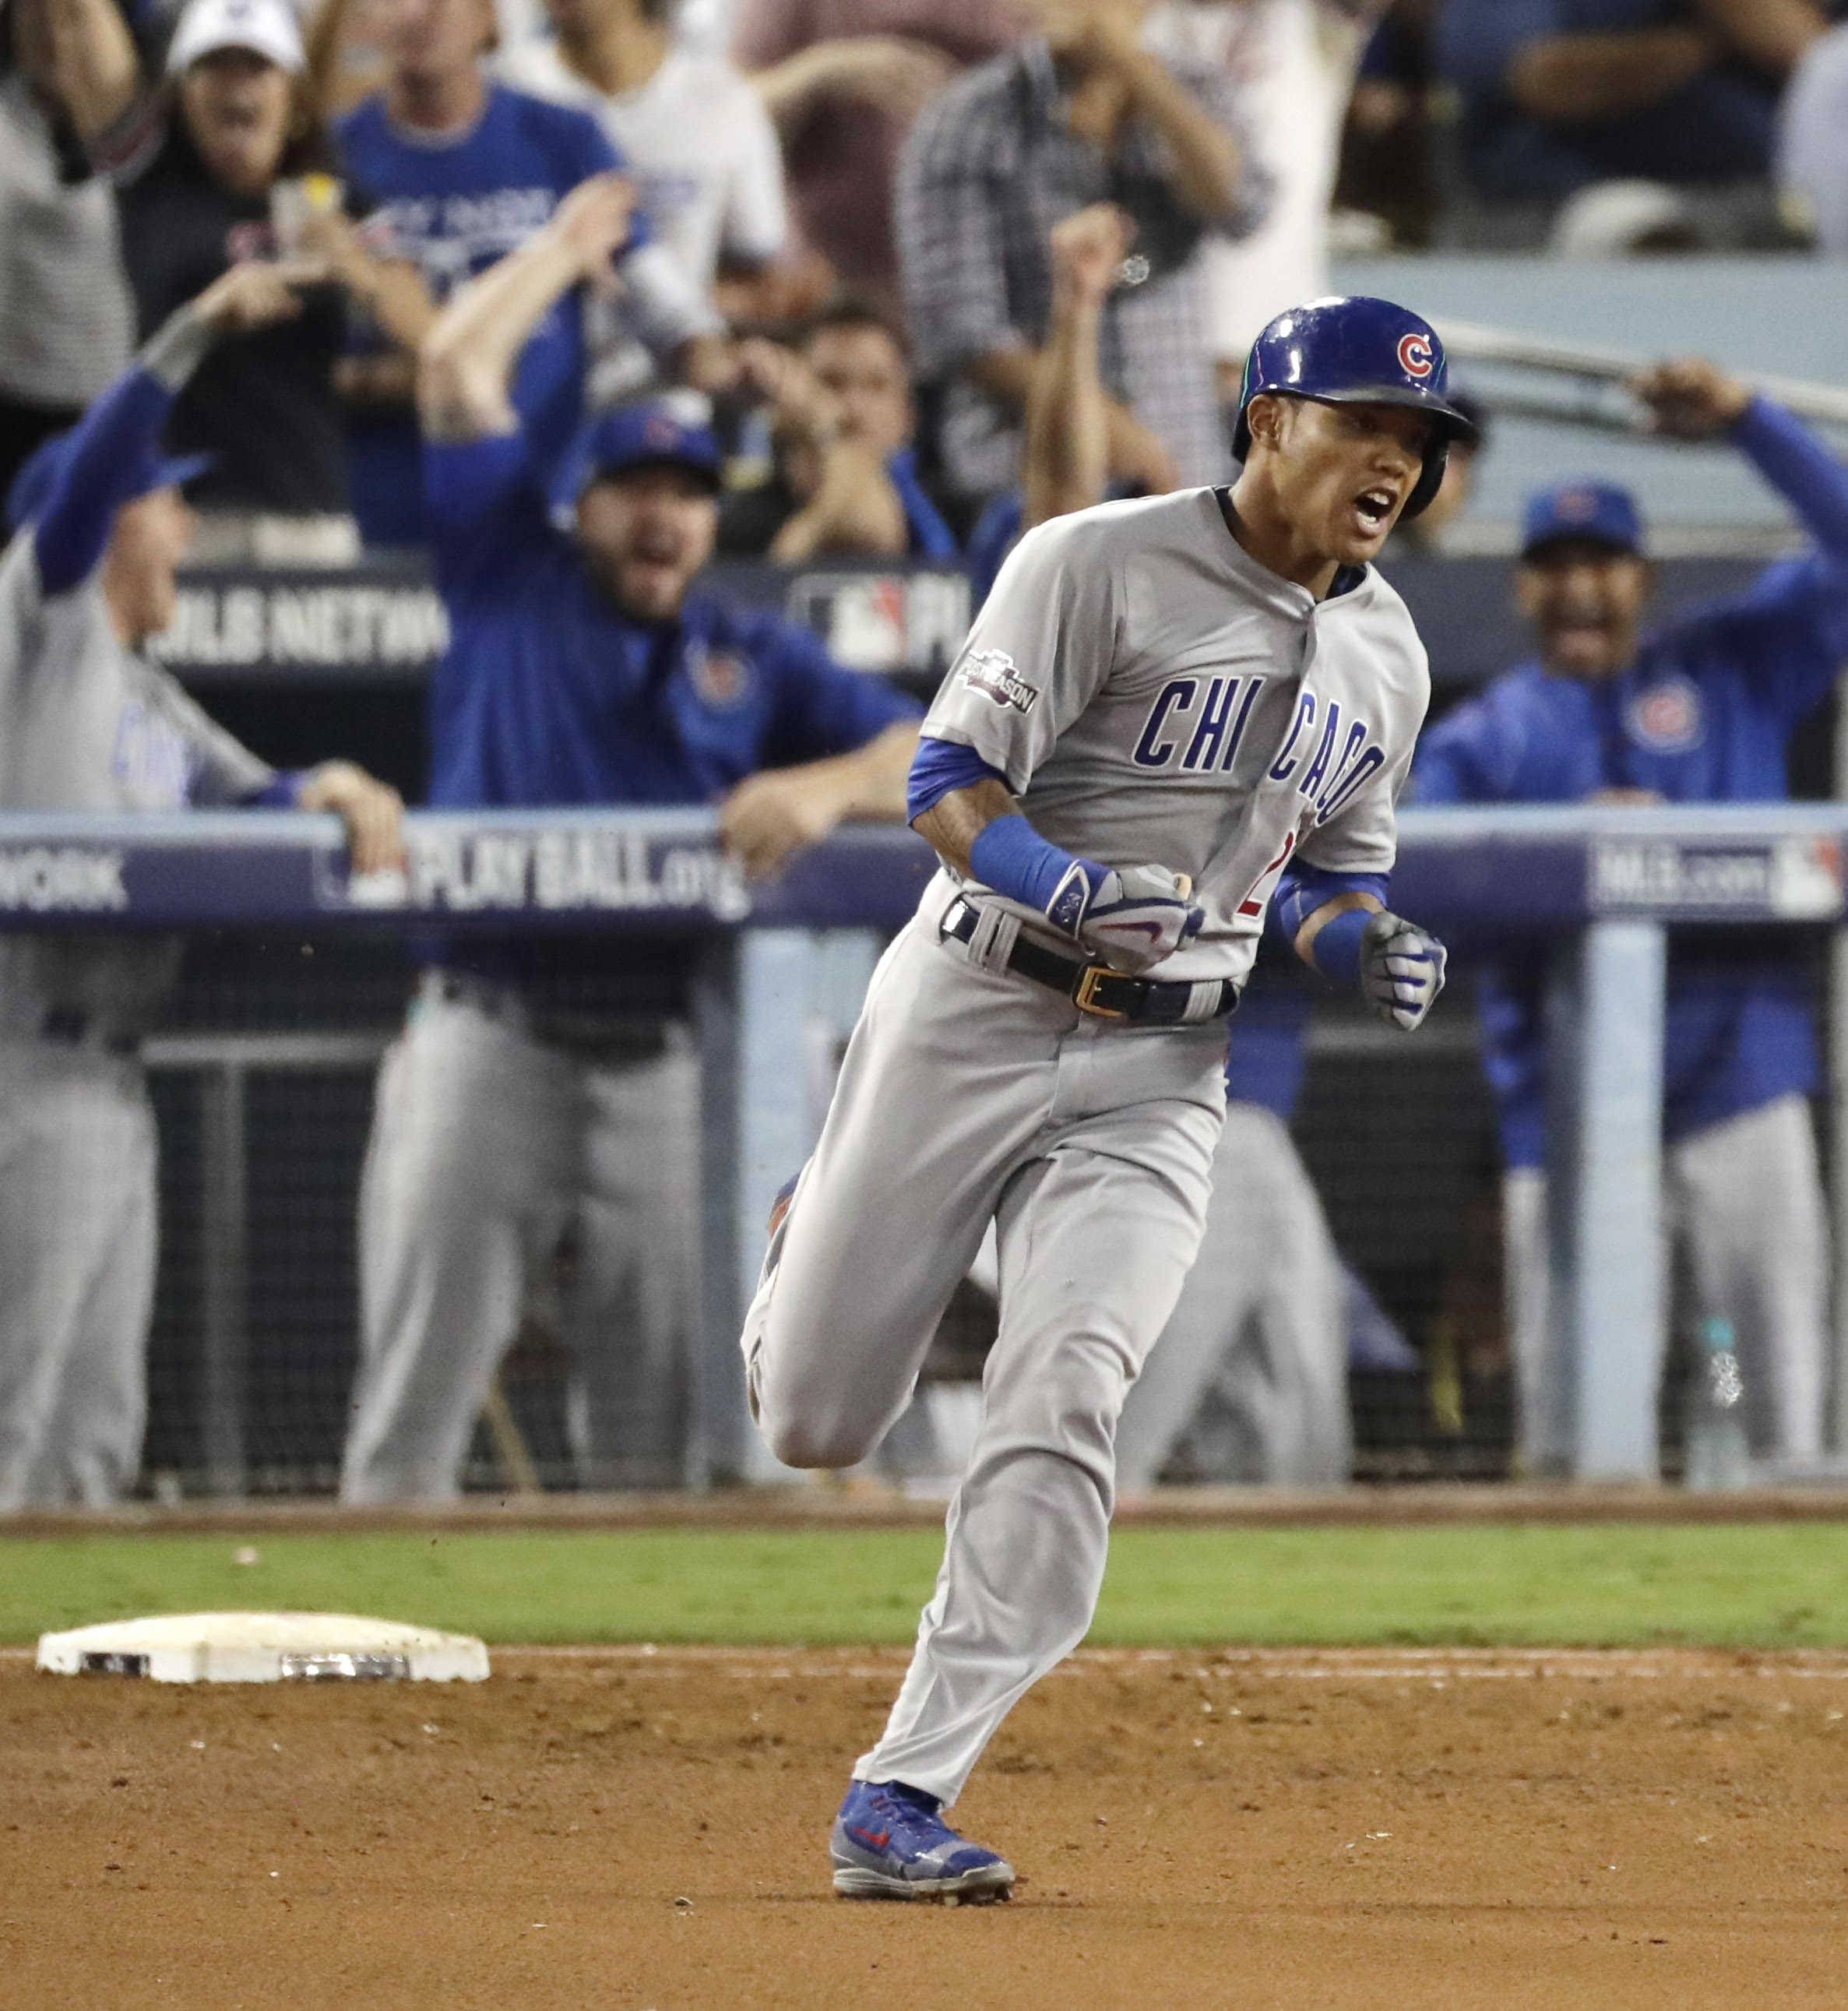 Chicago Cubs' Addison Russell reacts after hitting a two-run home run during the fourth inning of Game 4 of the National League baseball championship series against the Los Angeles Dodgers Wednesday, Oct. 19, 2016, in Los Angeles.